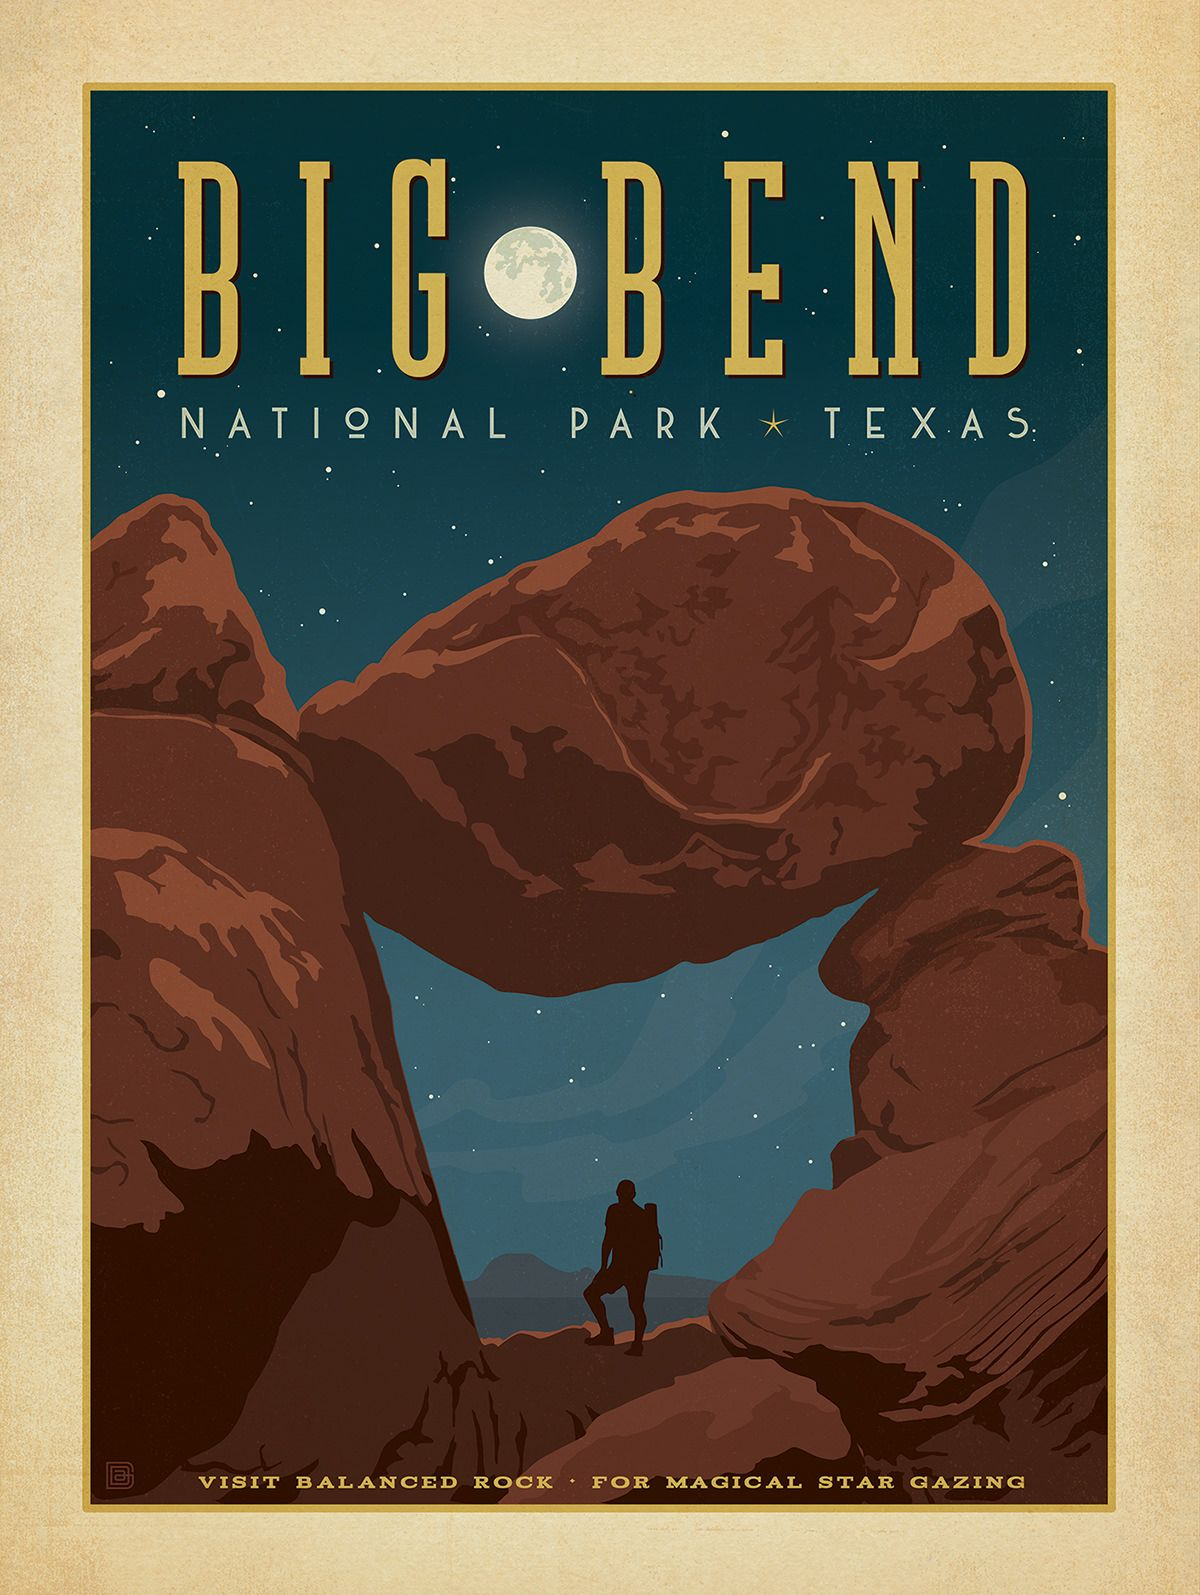 Big Bend National Park, Texas. Retro style travel posters